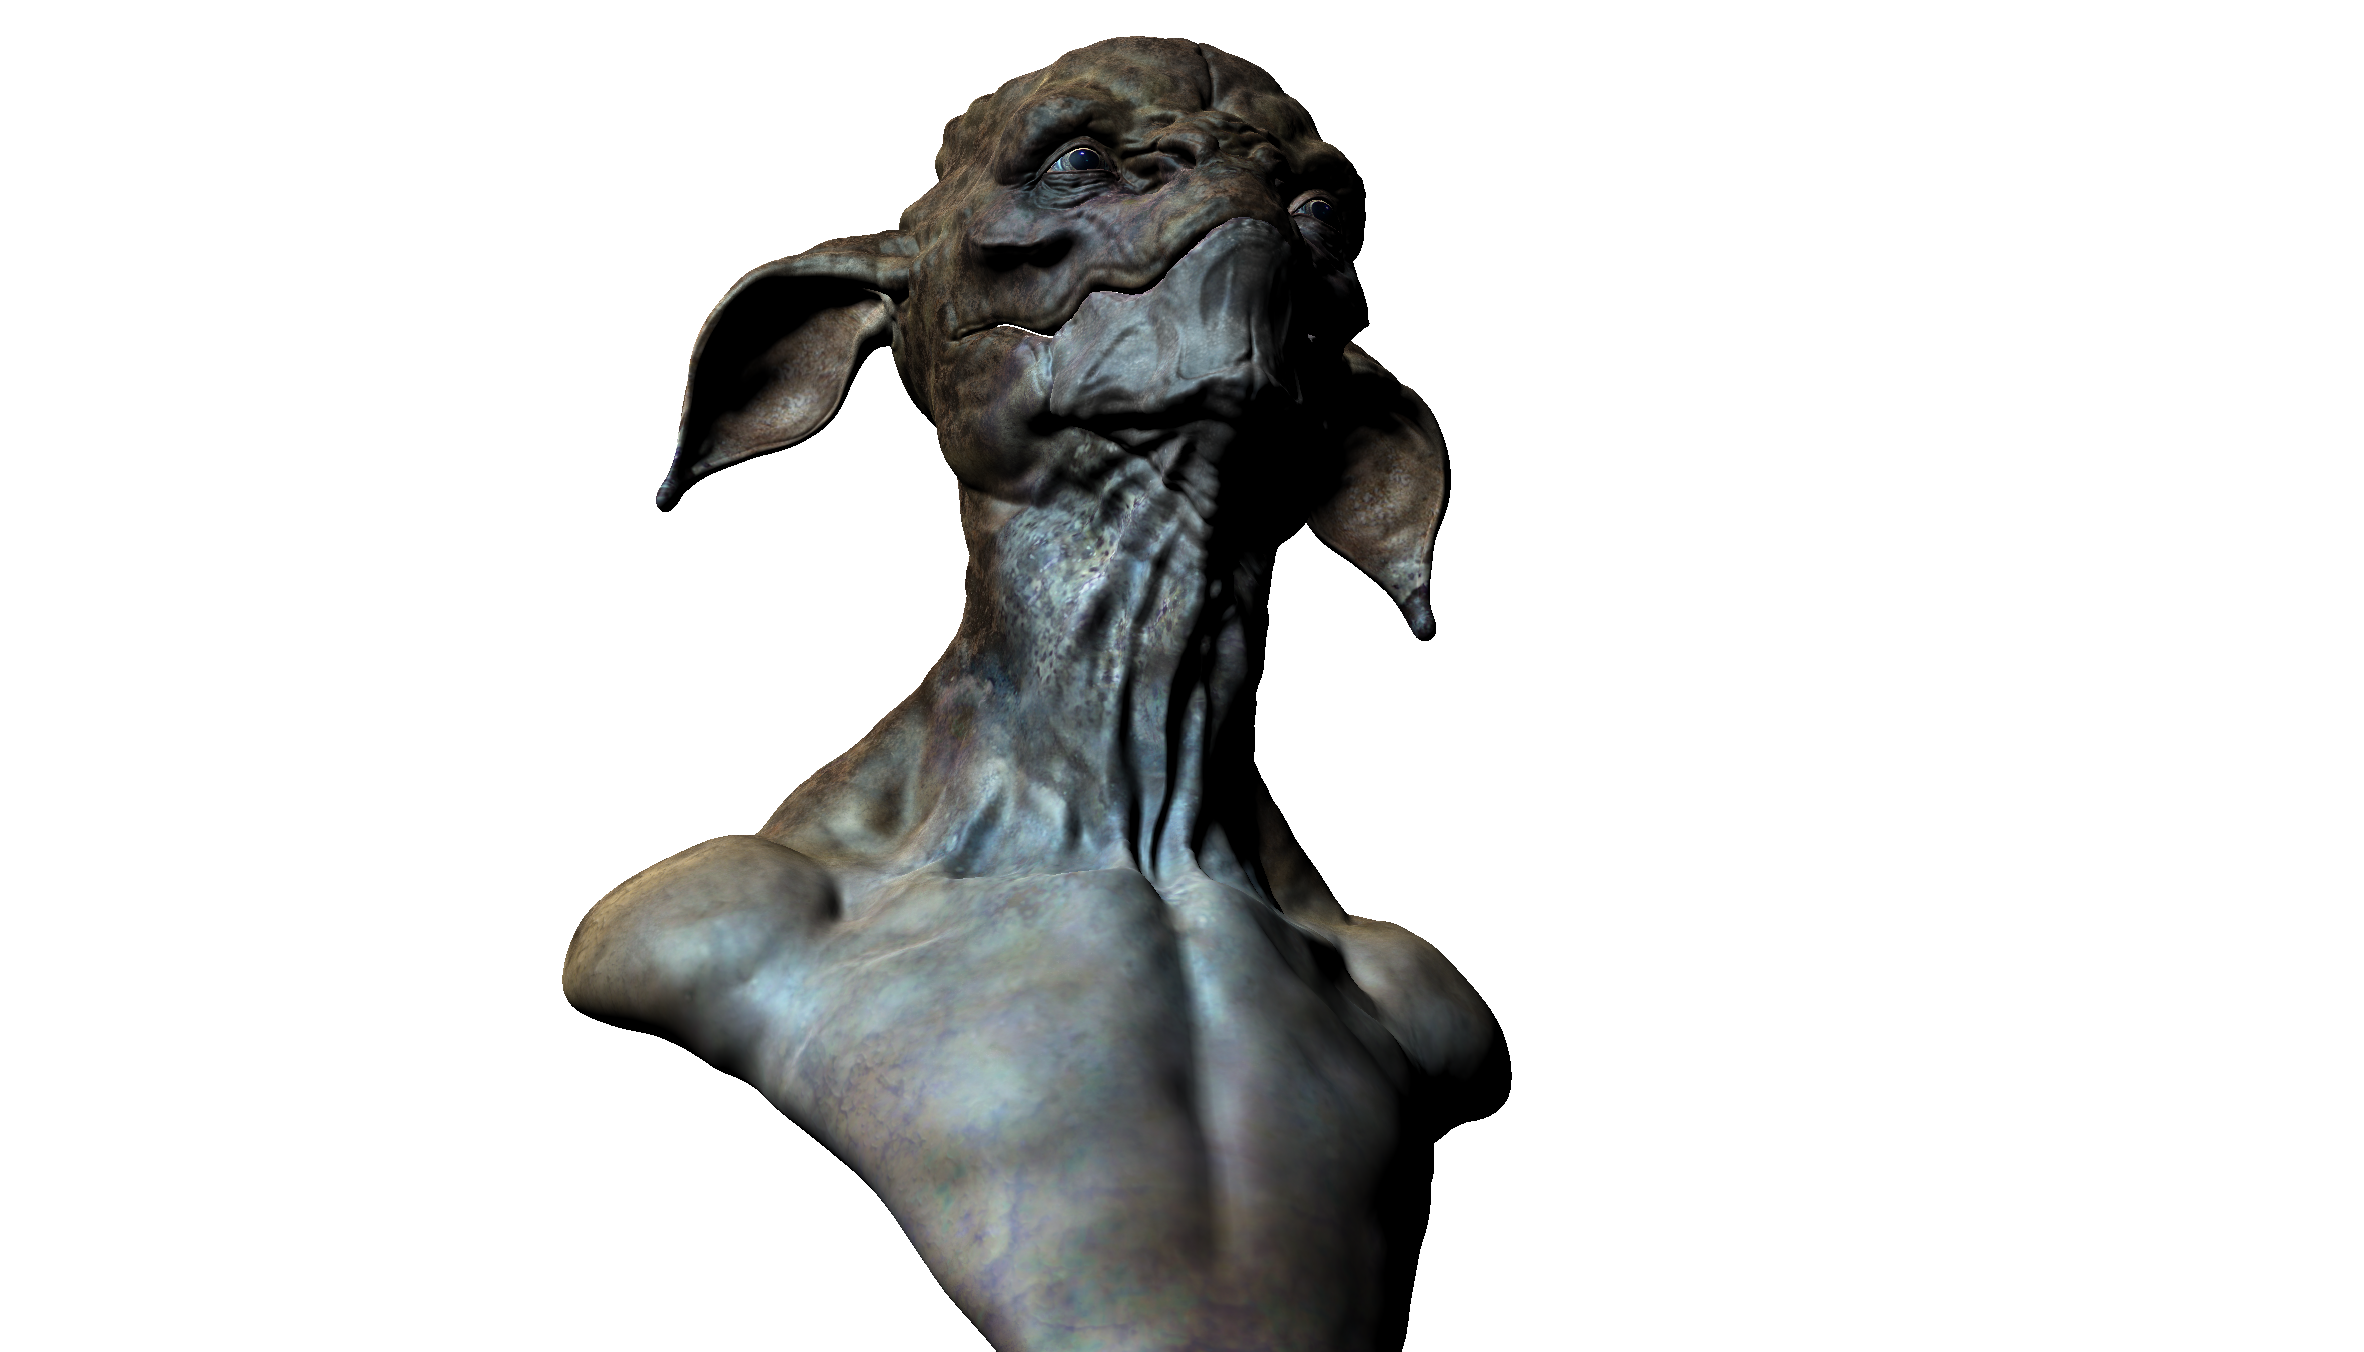 creature_tex_rough_v1c.png